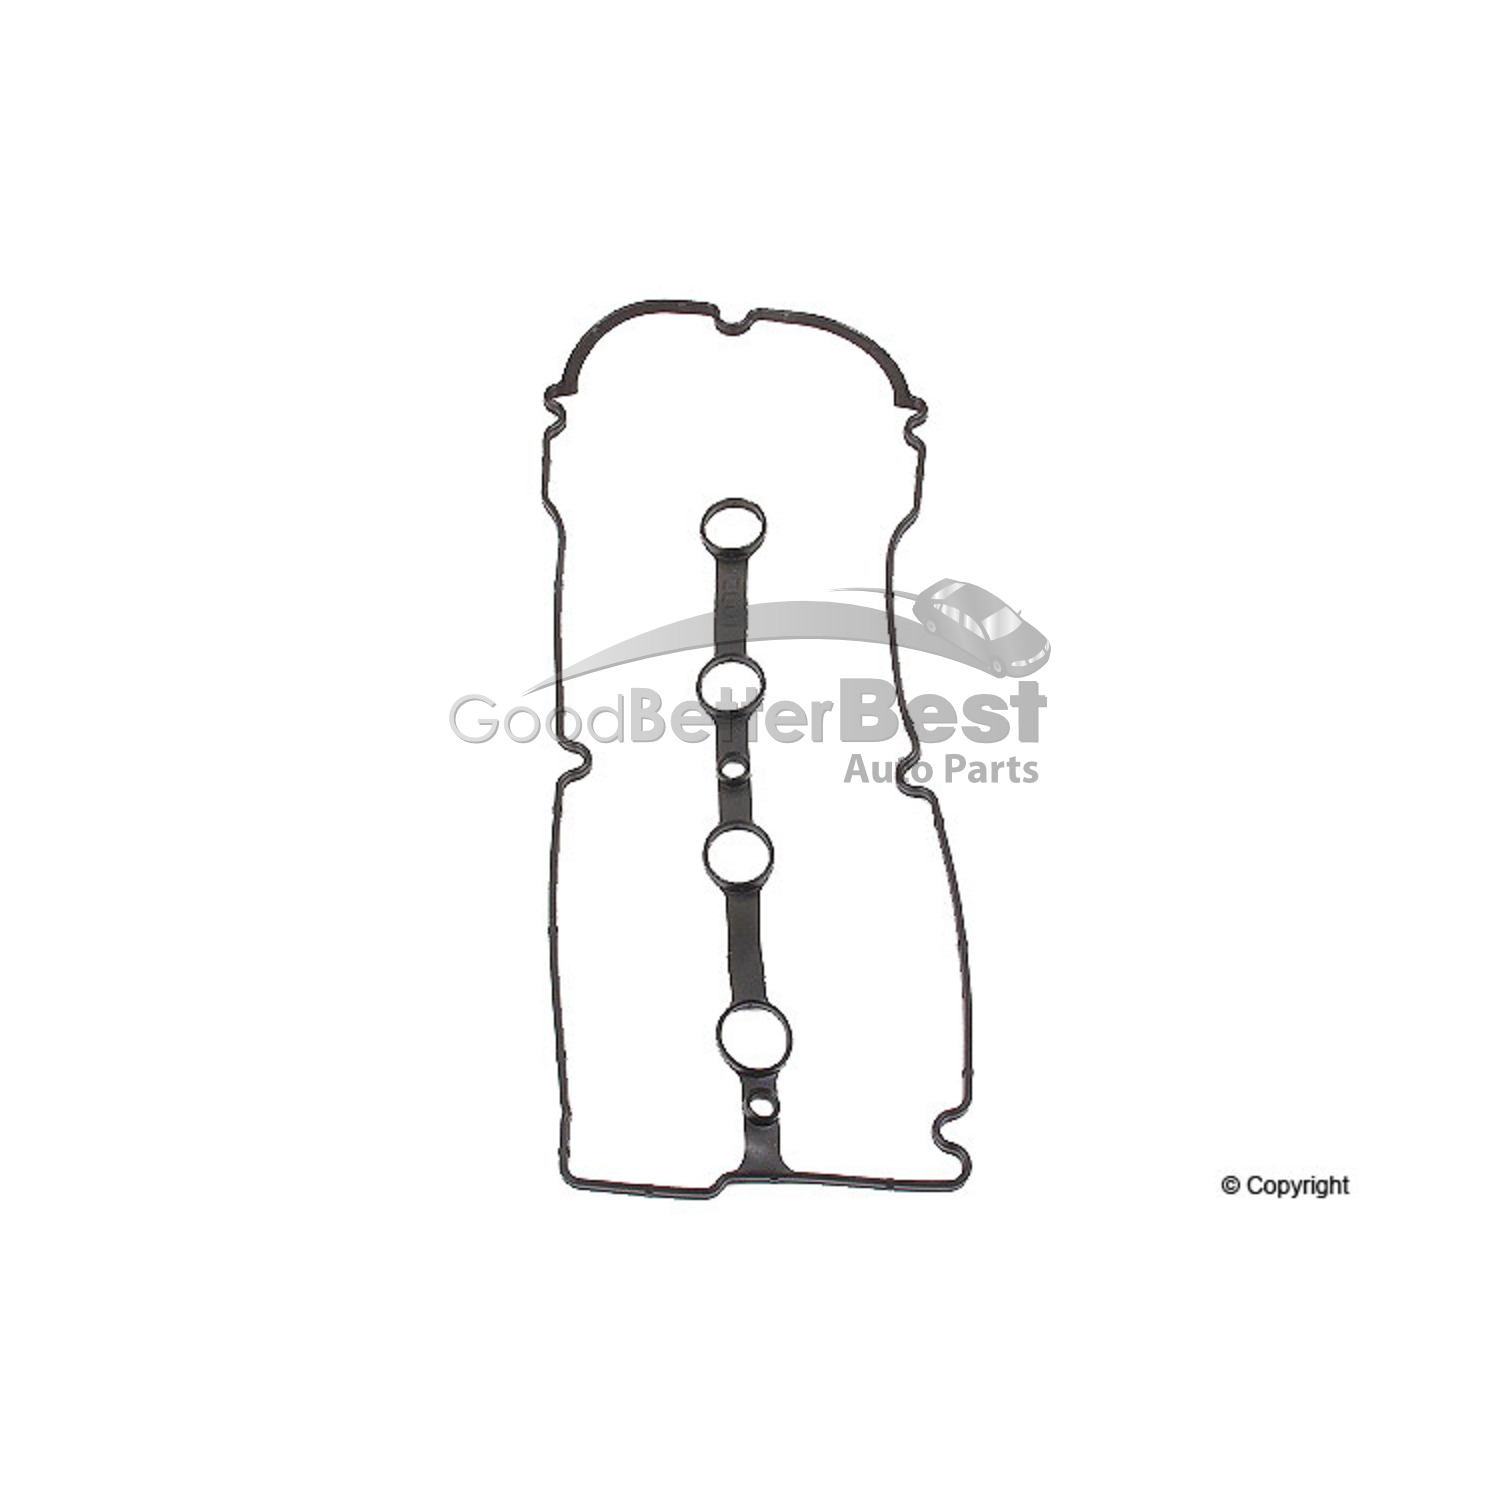 New Nippon Reinz Engine Valve Cover Gasket ZL0110235 for